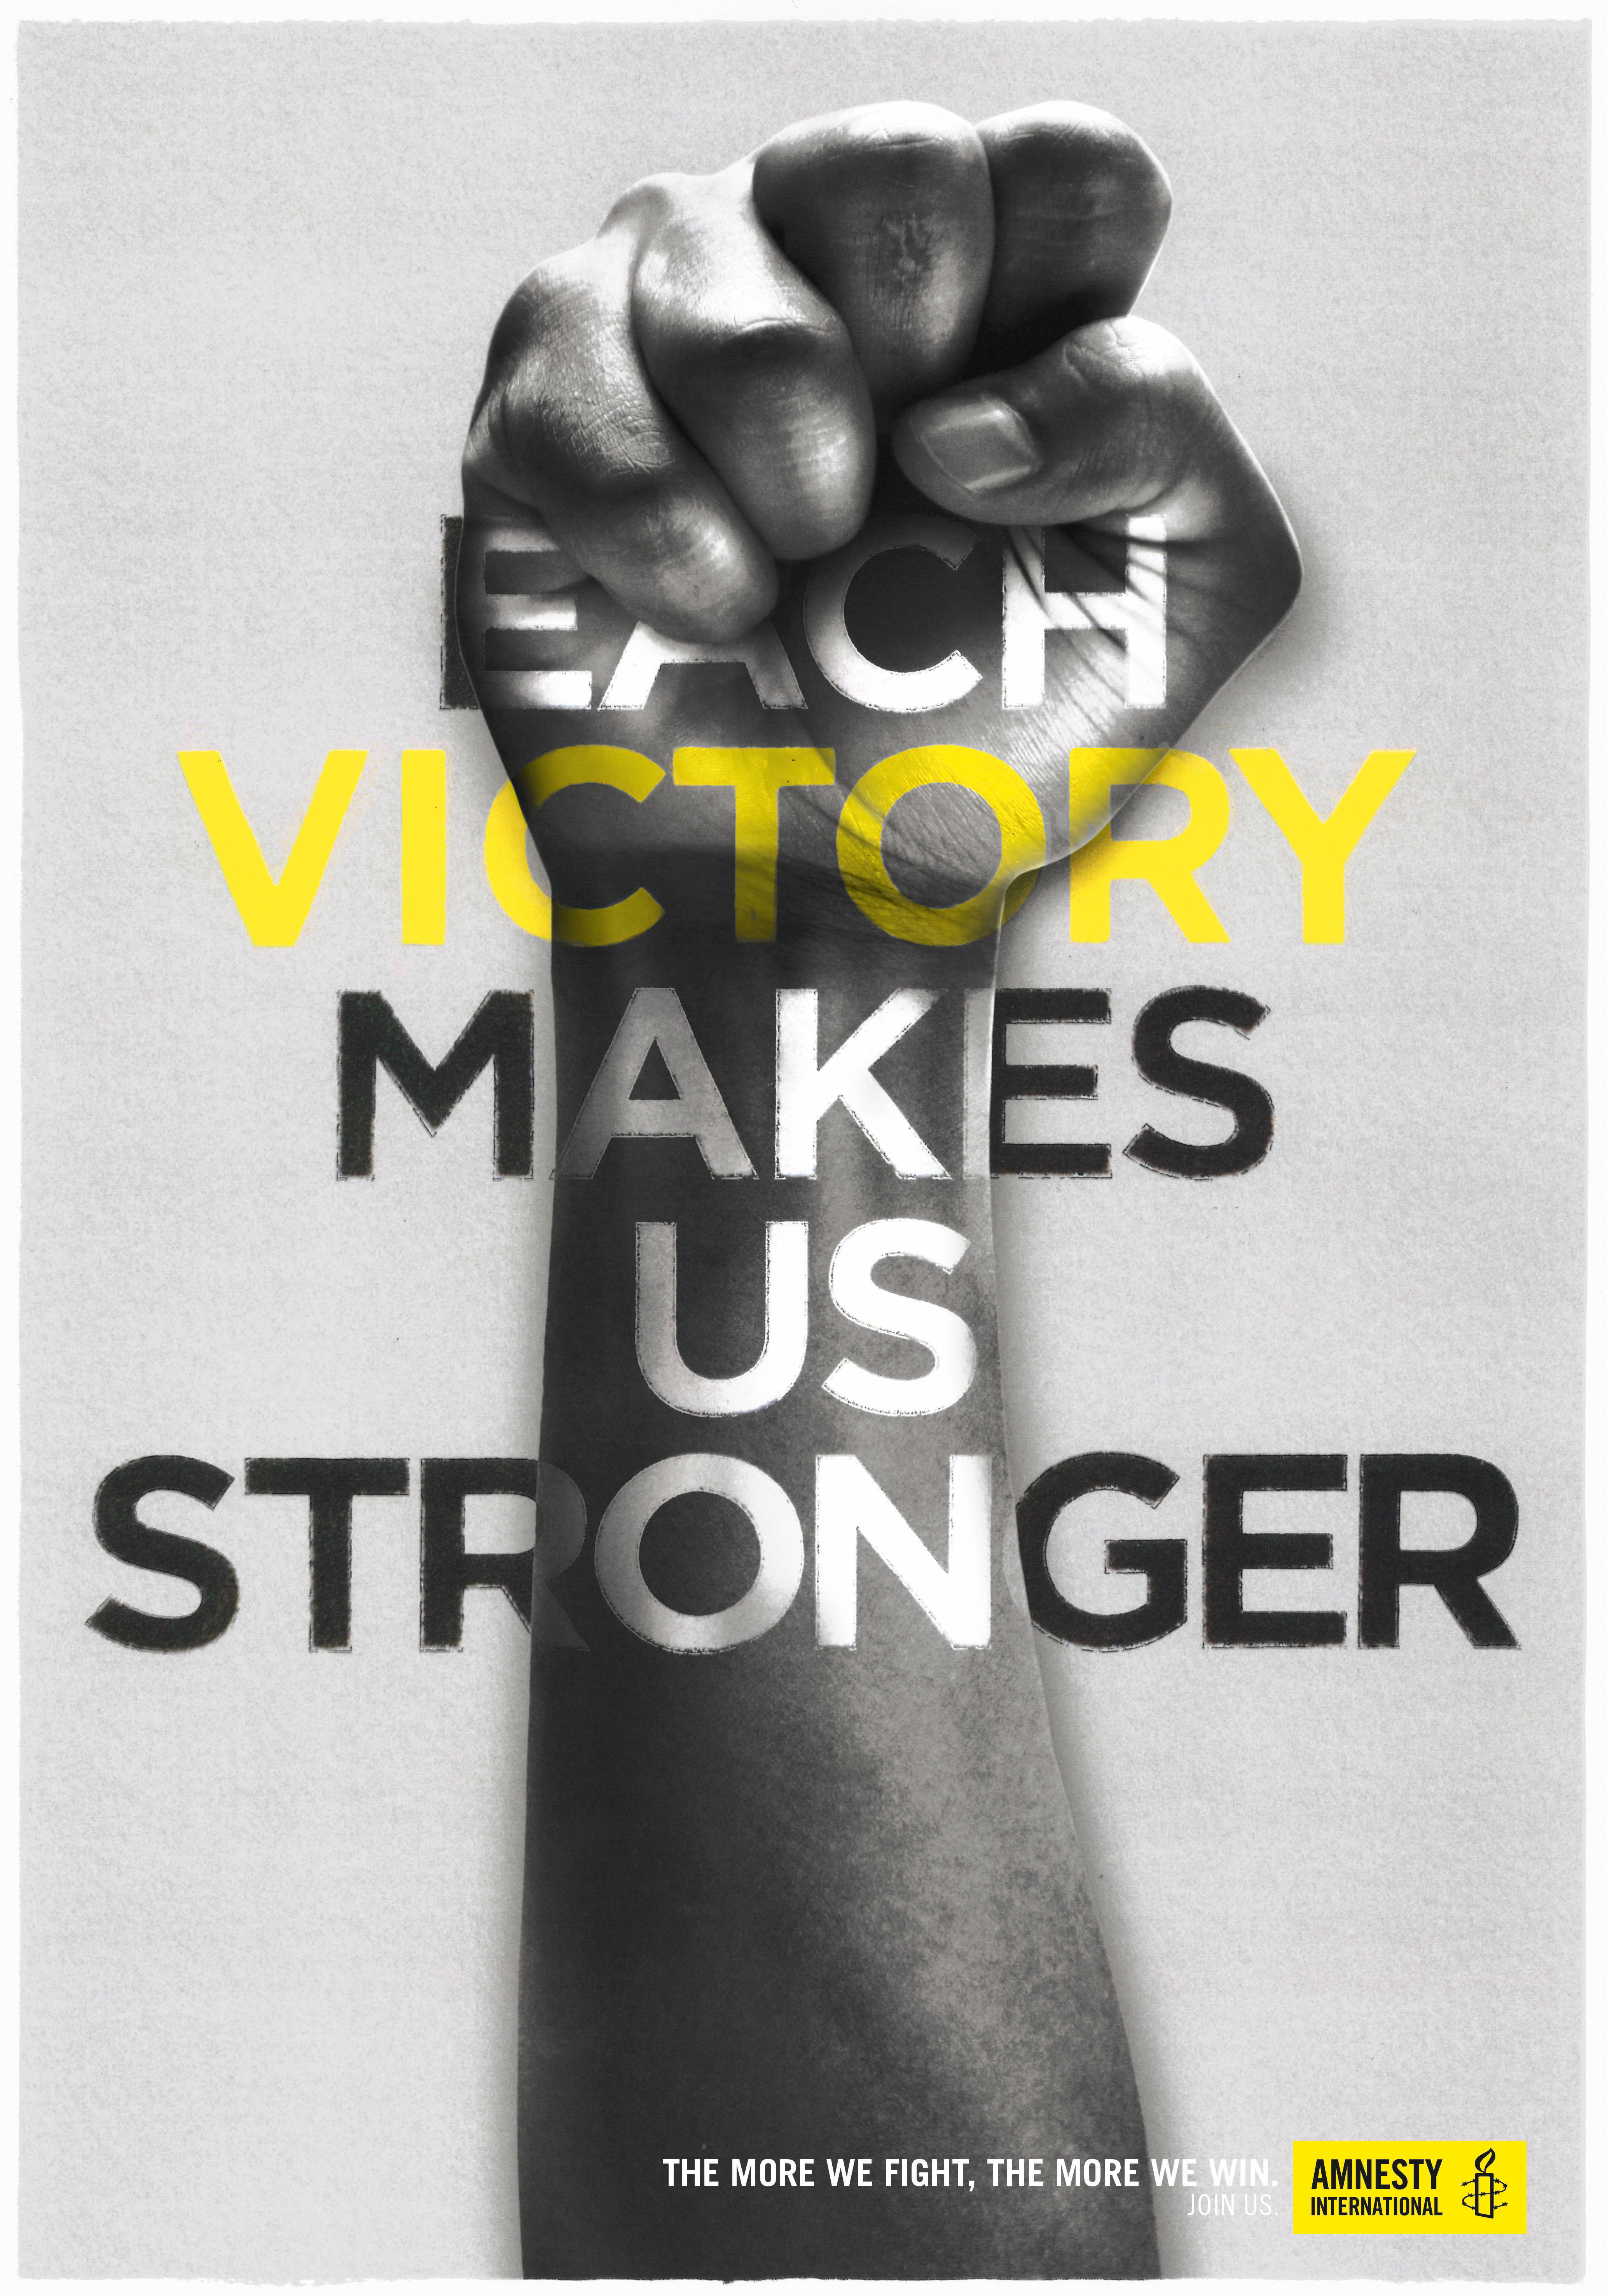 Amnesty International: Each victory makes us stronger